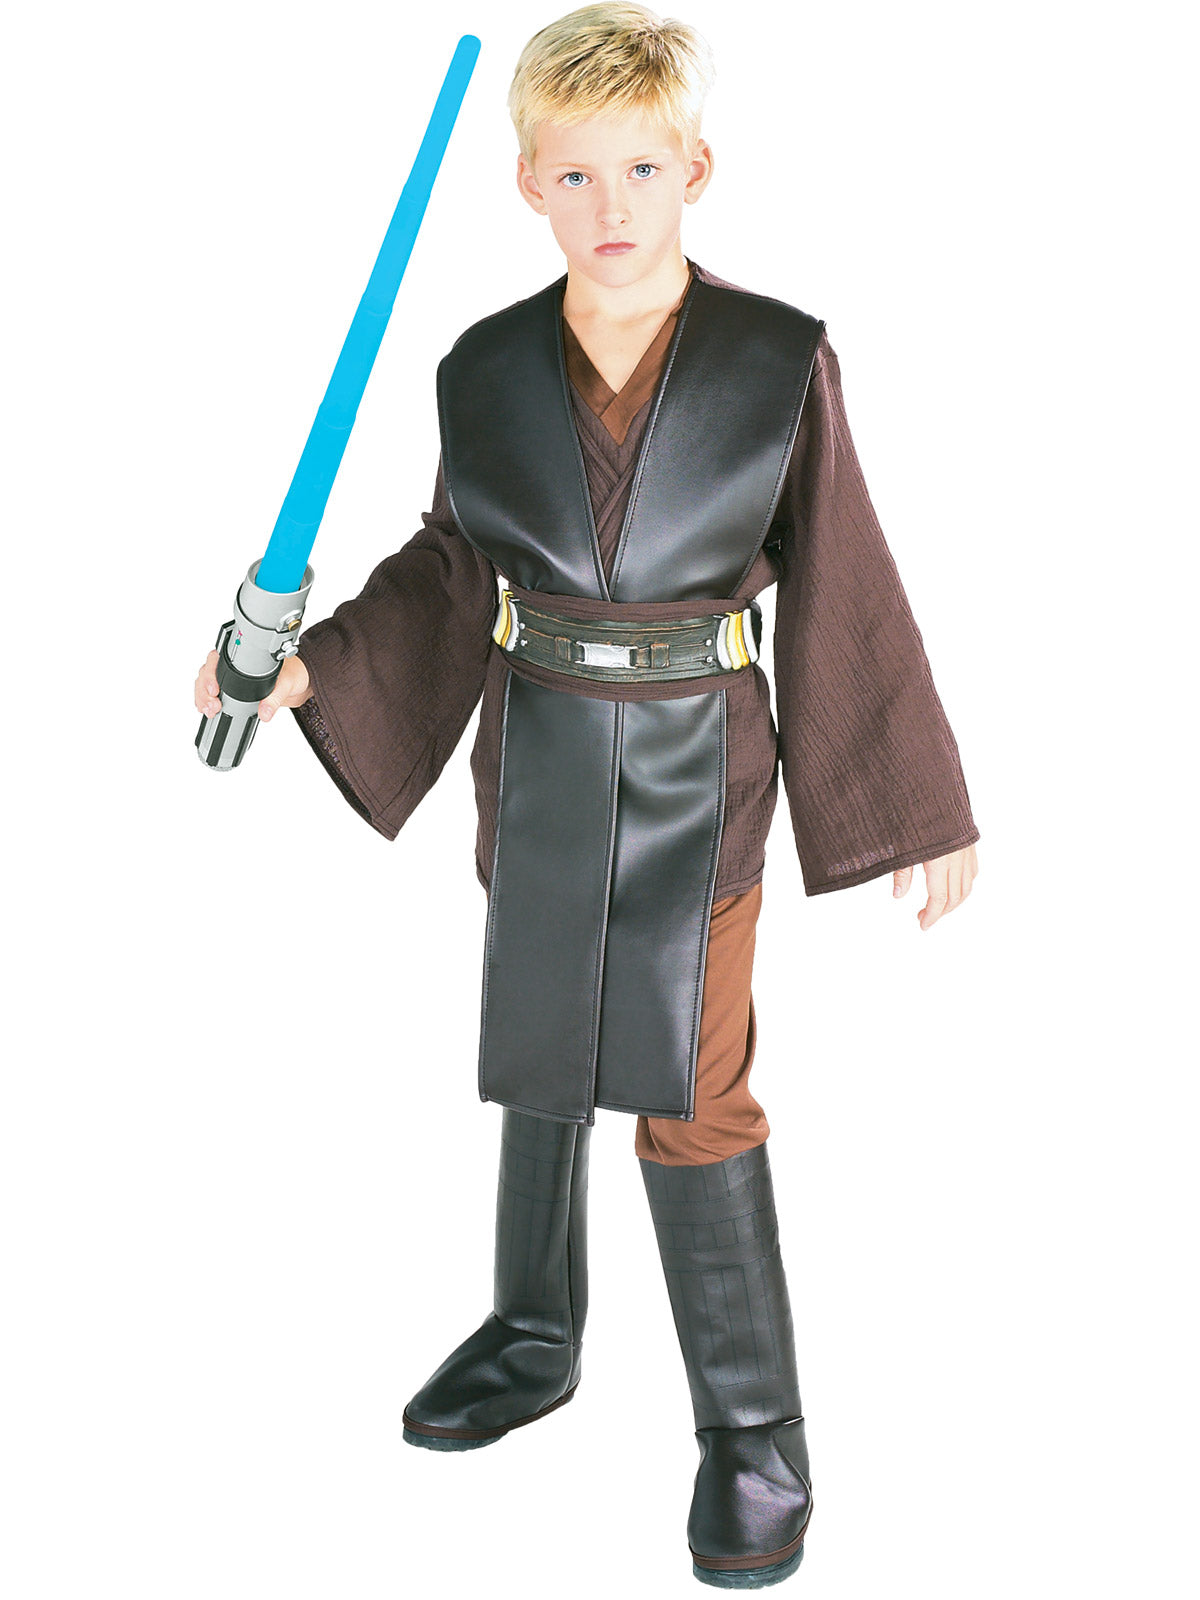 Anakin Skywalker Deluxe Child Costume - Buy Online Only